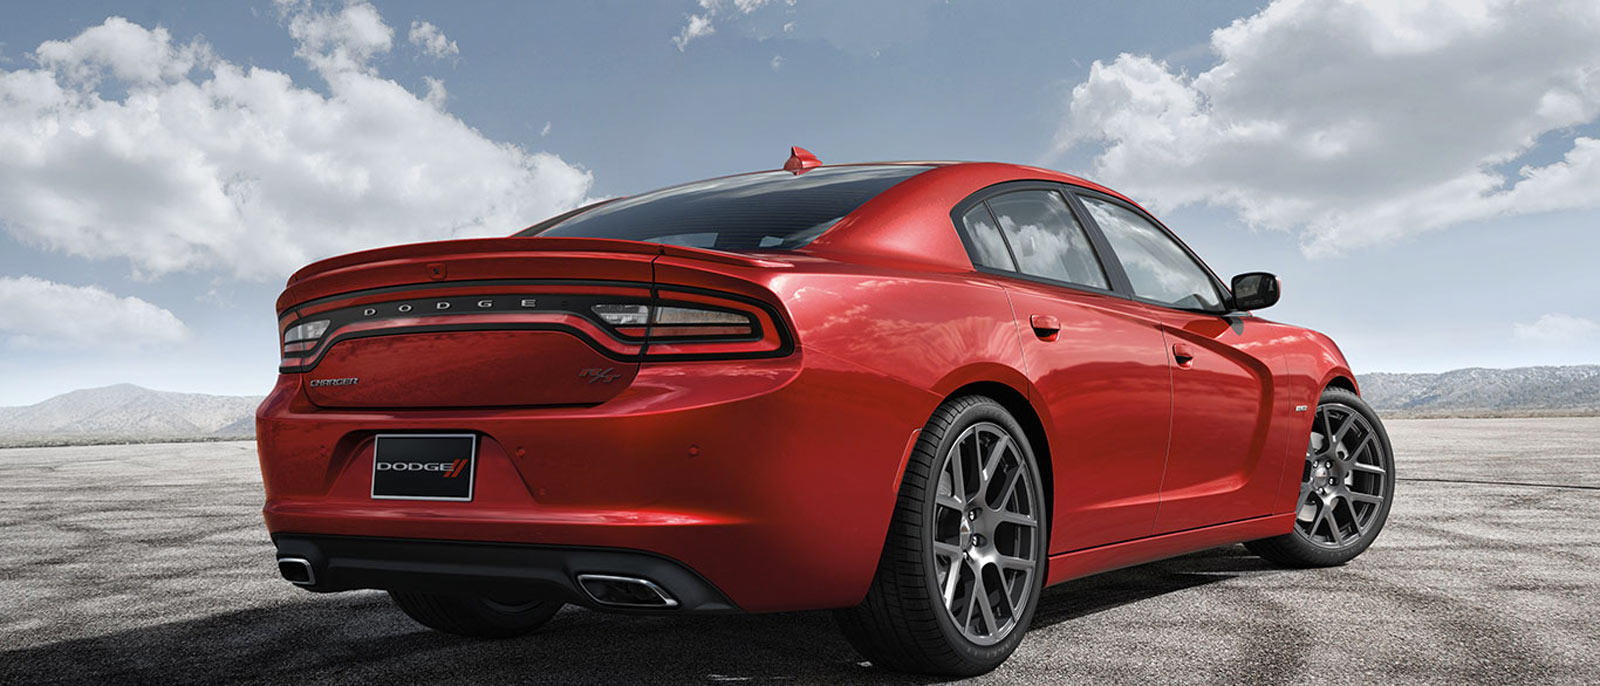 2015 Dodge Charger in red